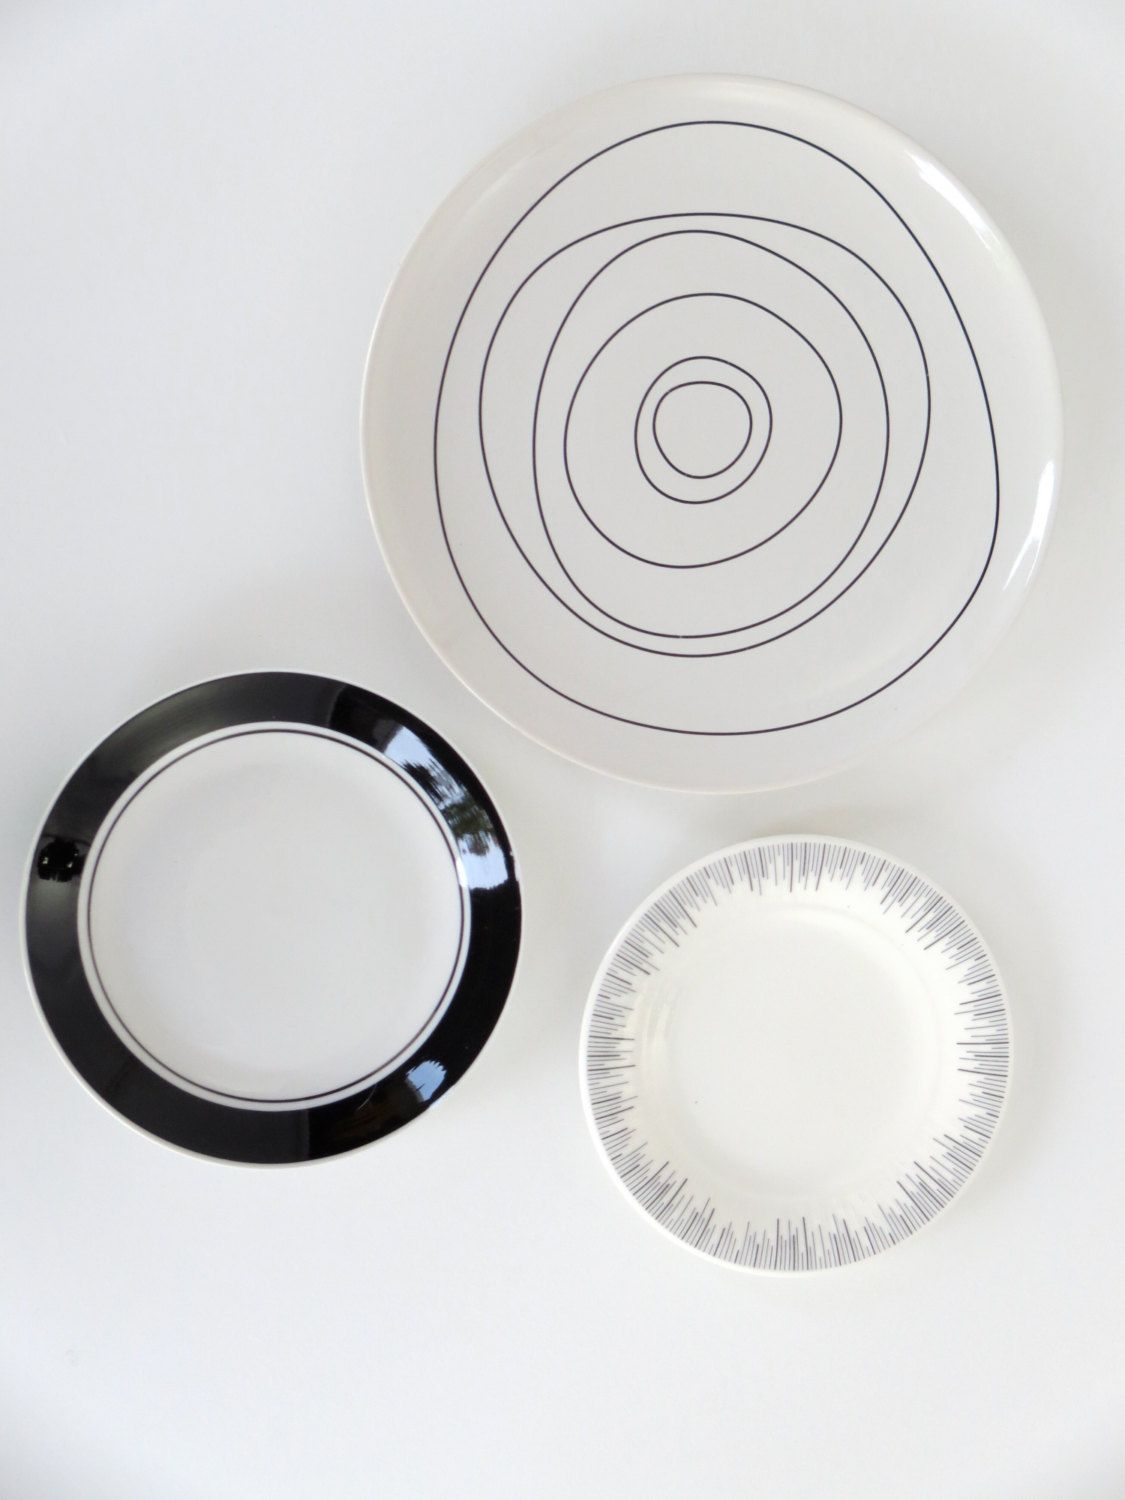 Decorative Kitchen Plates For Wall Makeover Ideas Black And White How To Beautify Your